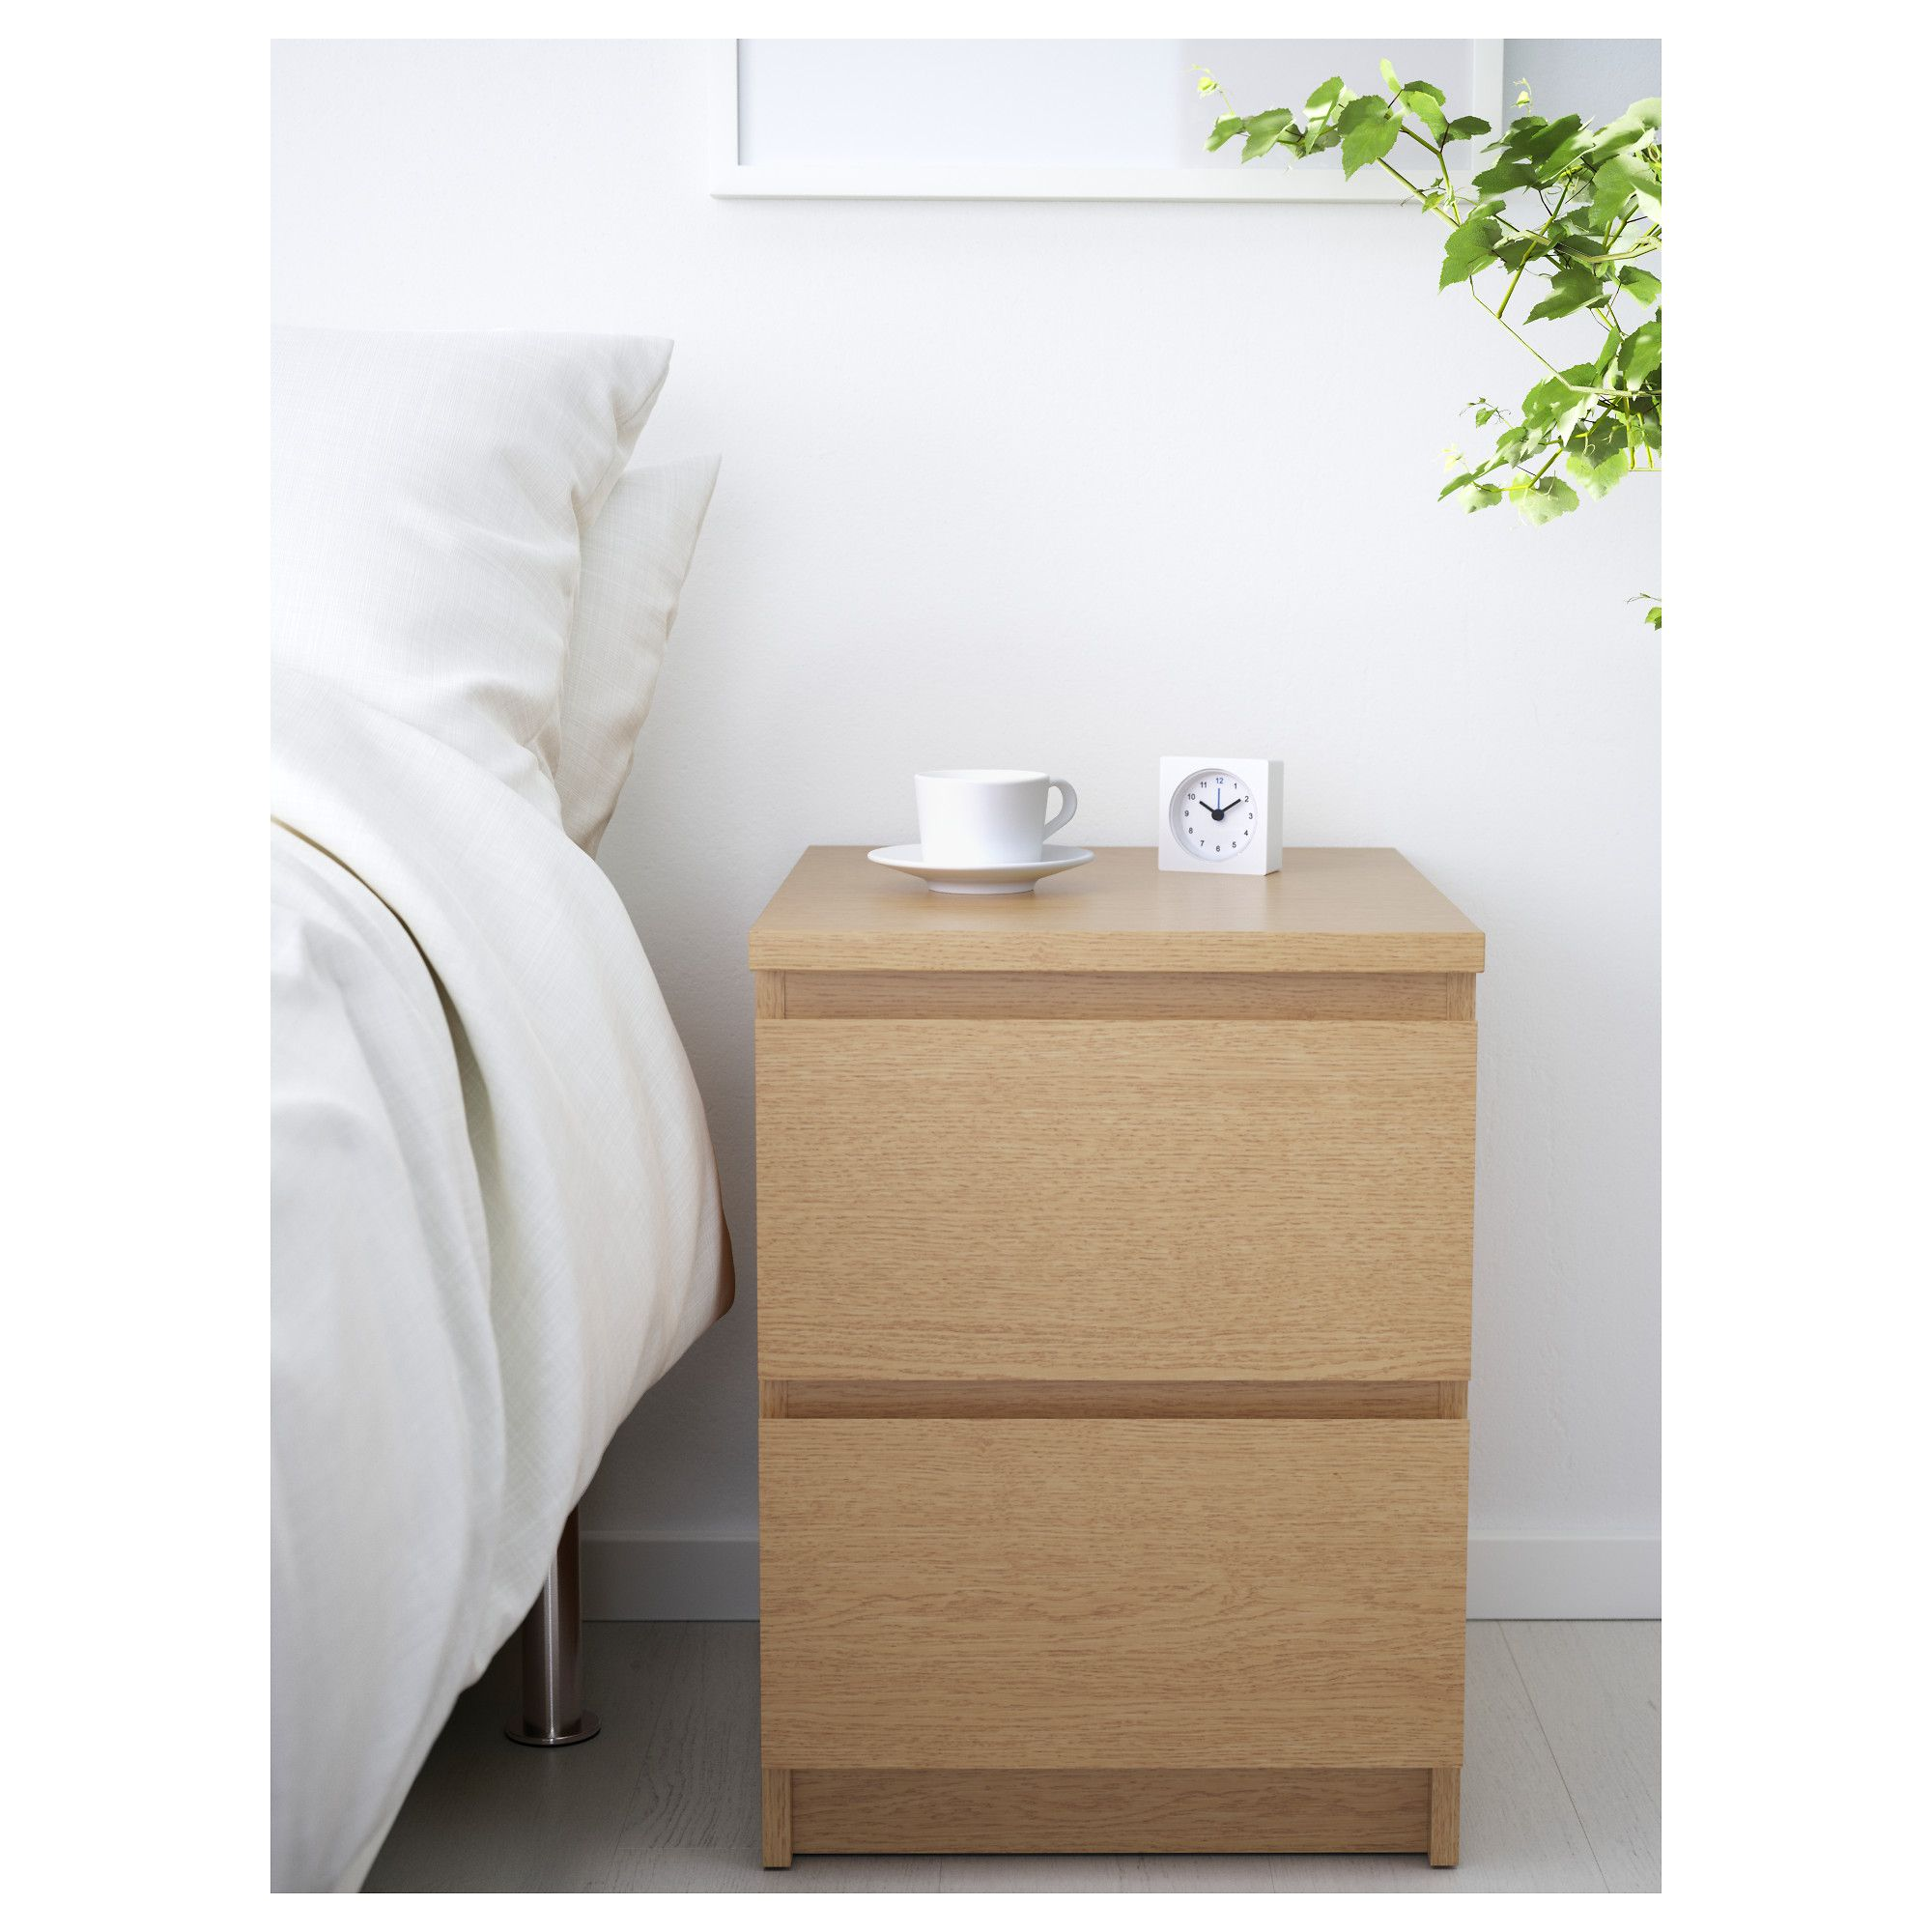 Oak Veneer Bedroom Furniture Malm Chest Of 2 Drawers Oak Veneer 40x55 Cm Drawers Furniture